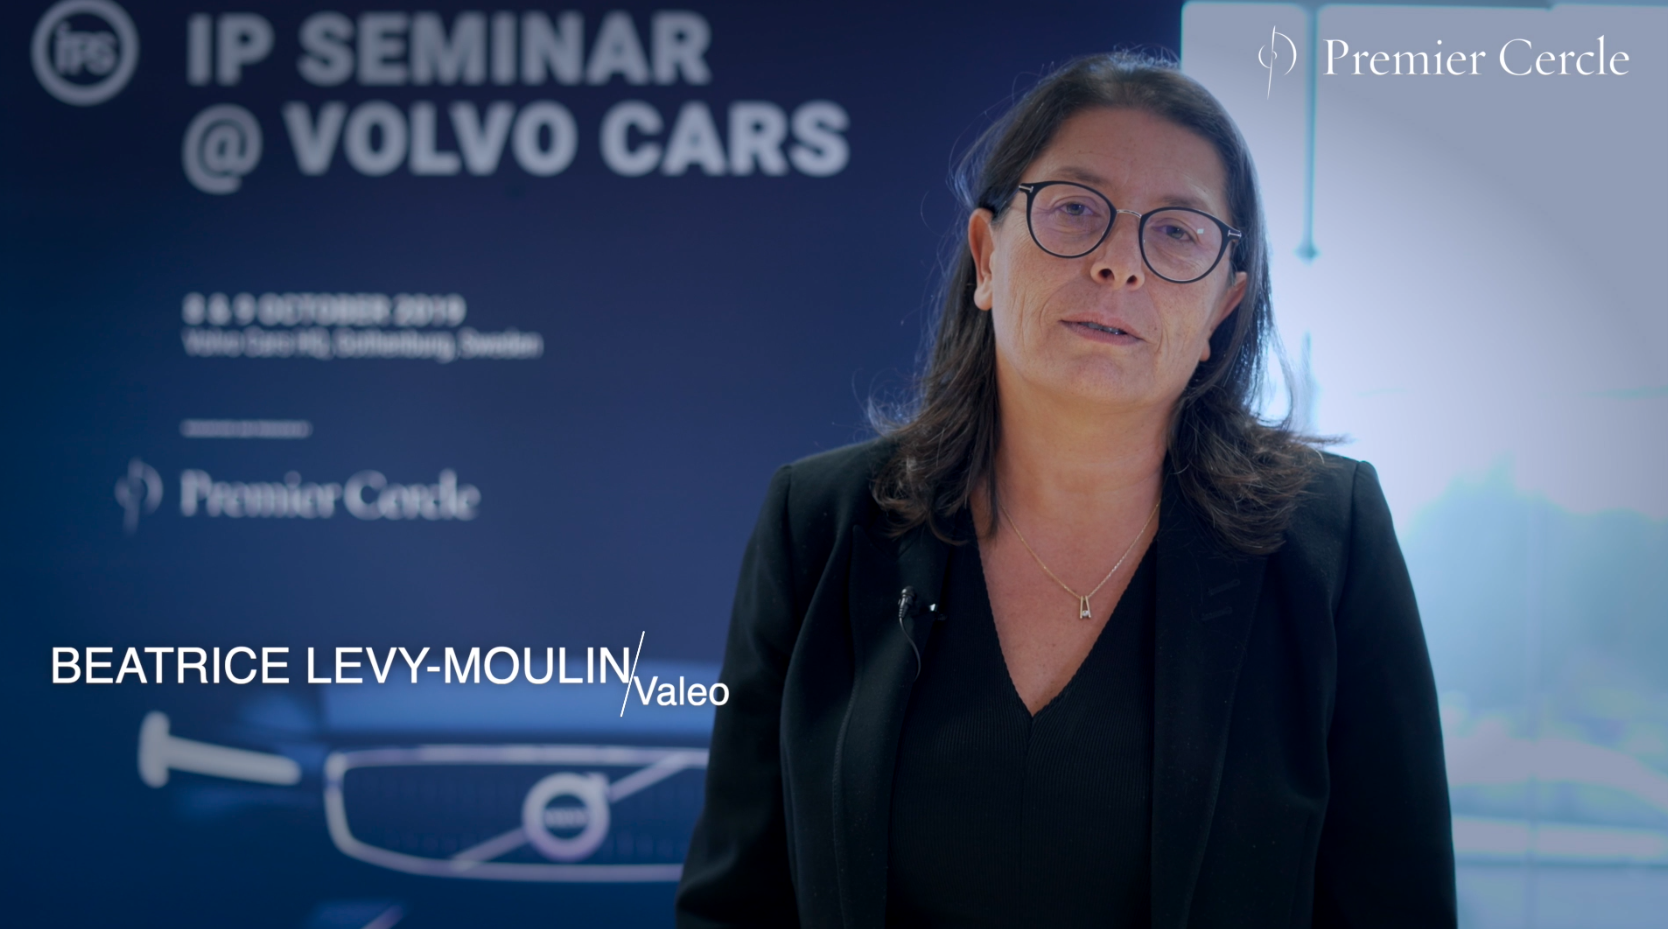 Béatrice Levy Moulin from Valeo interviewed by Premier Cercle